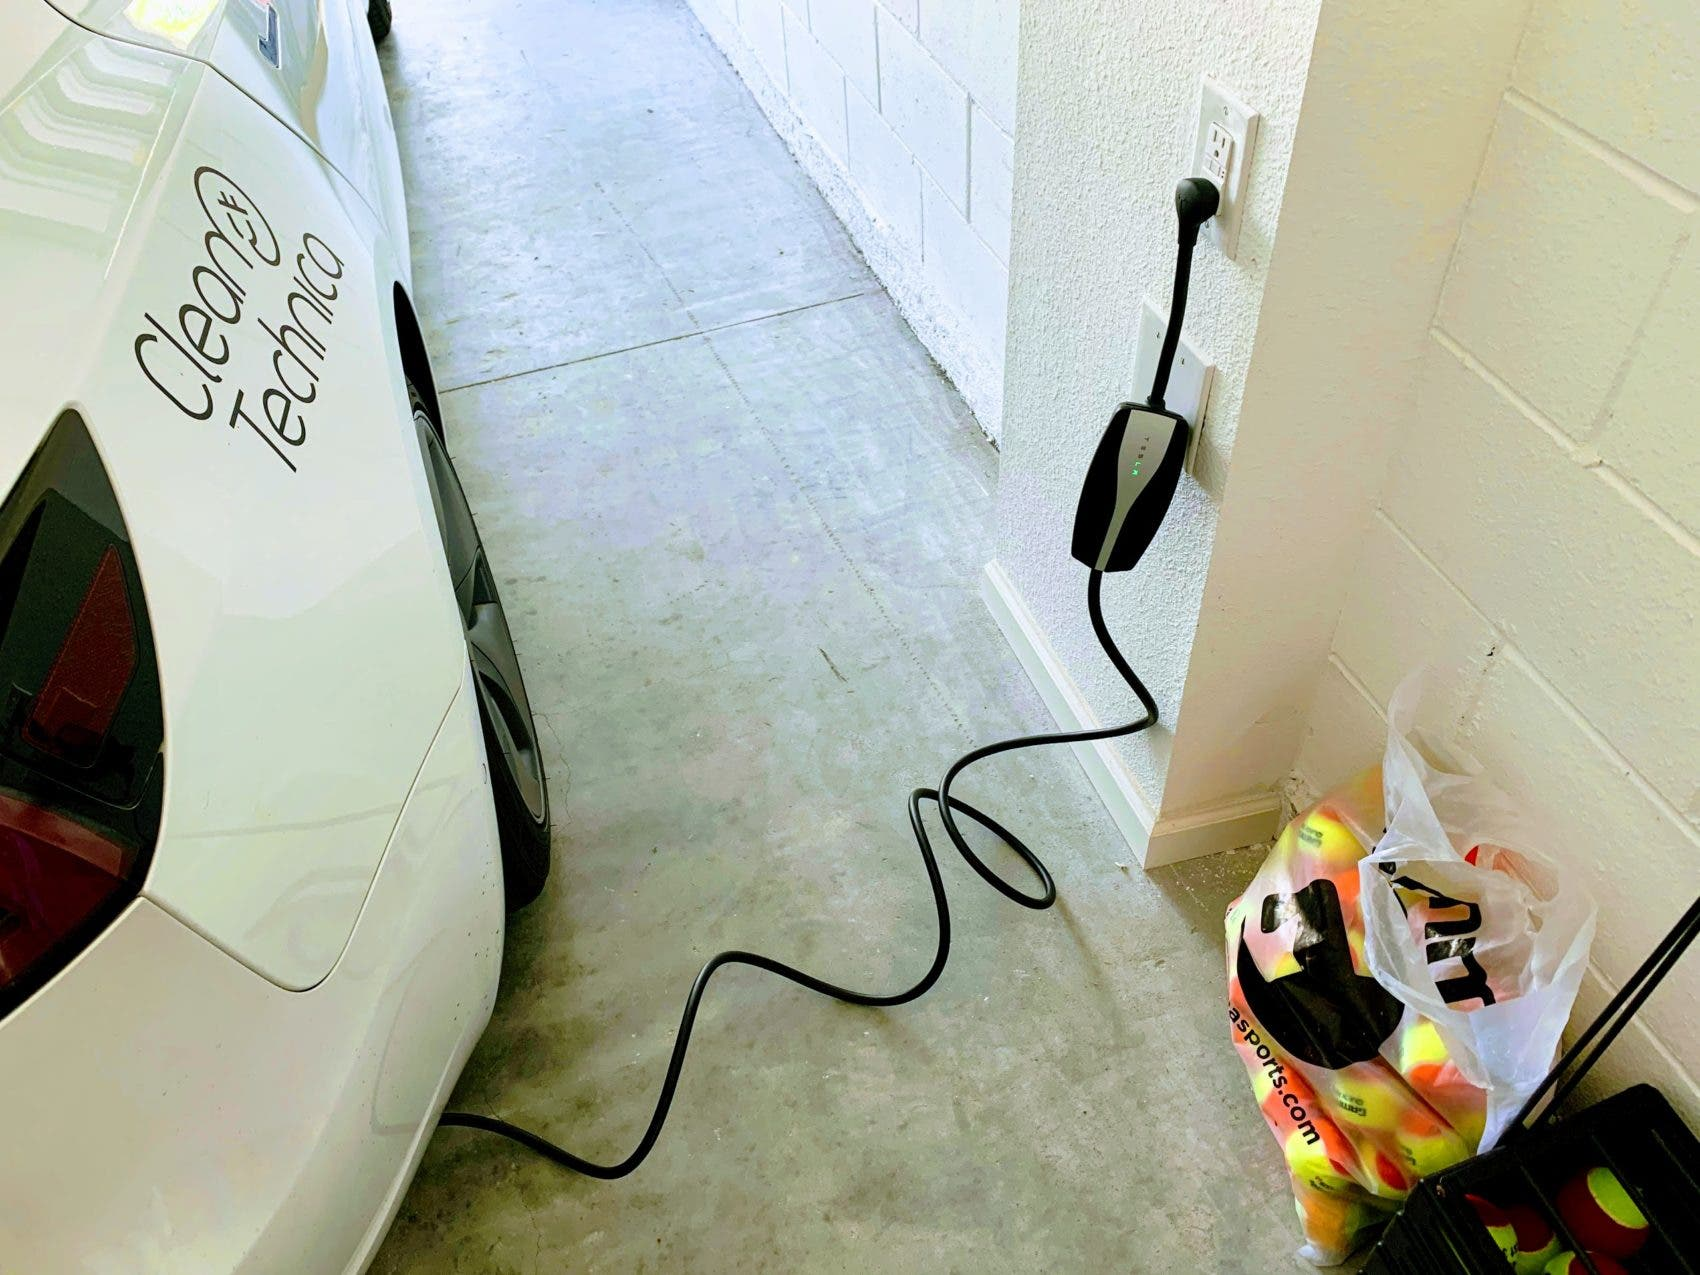 How Long Does It Take To Charge An Electric Car? A Few Seconds